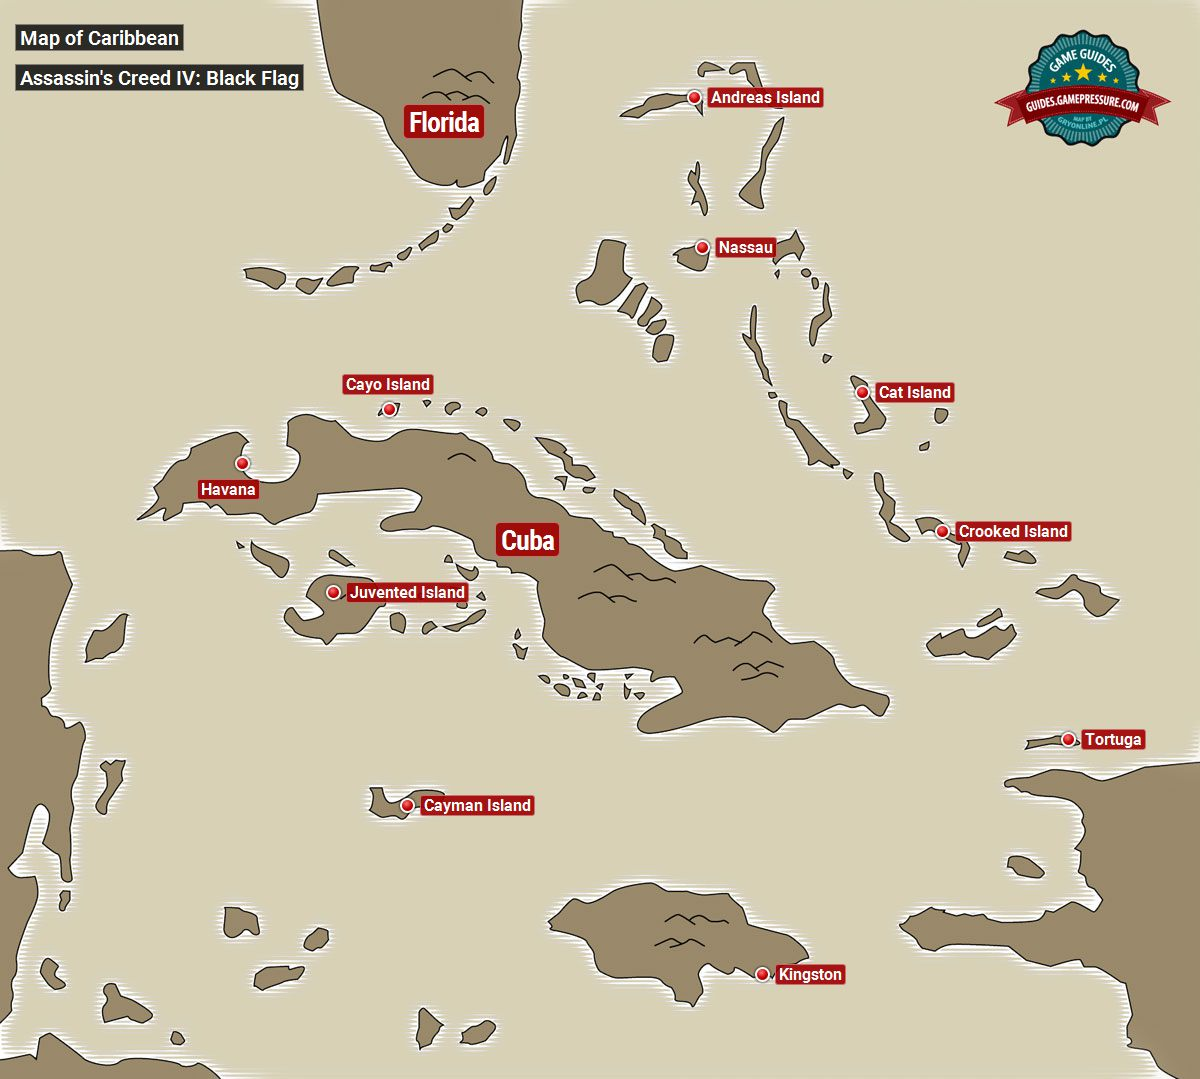 Black Flag Map Map of the Caribbean | Basic info   Assassin's Creed IV: Black  Black Flag Map